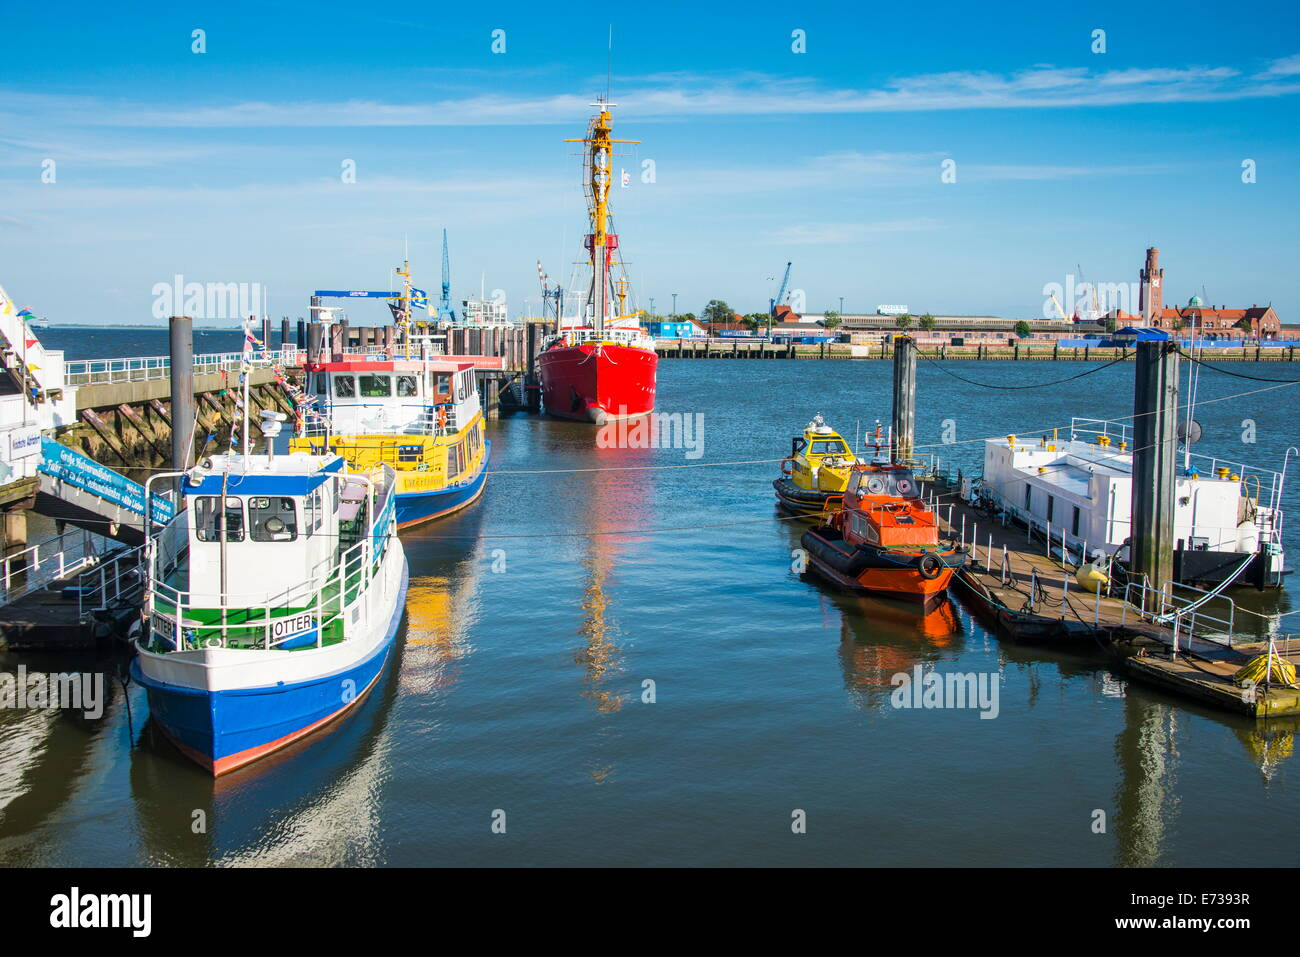 Fishing boats in the harbour of Cuxhaven, Lower Saxony, Germany, Europe - Stock Image